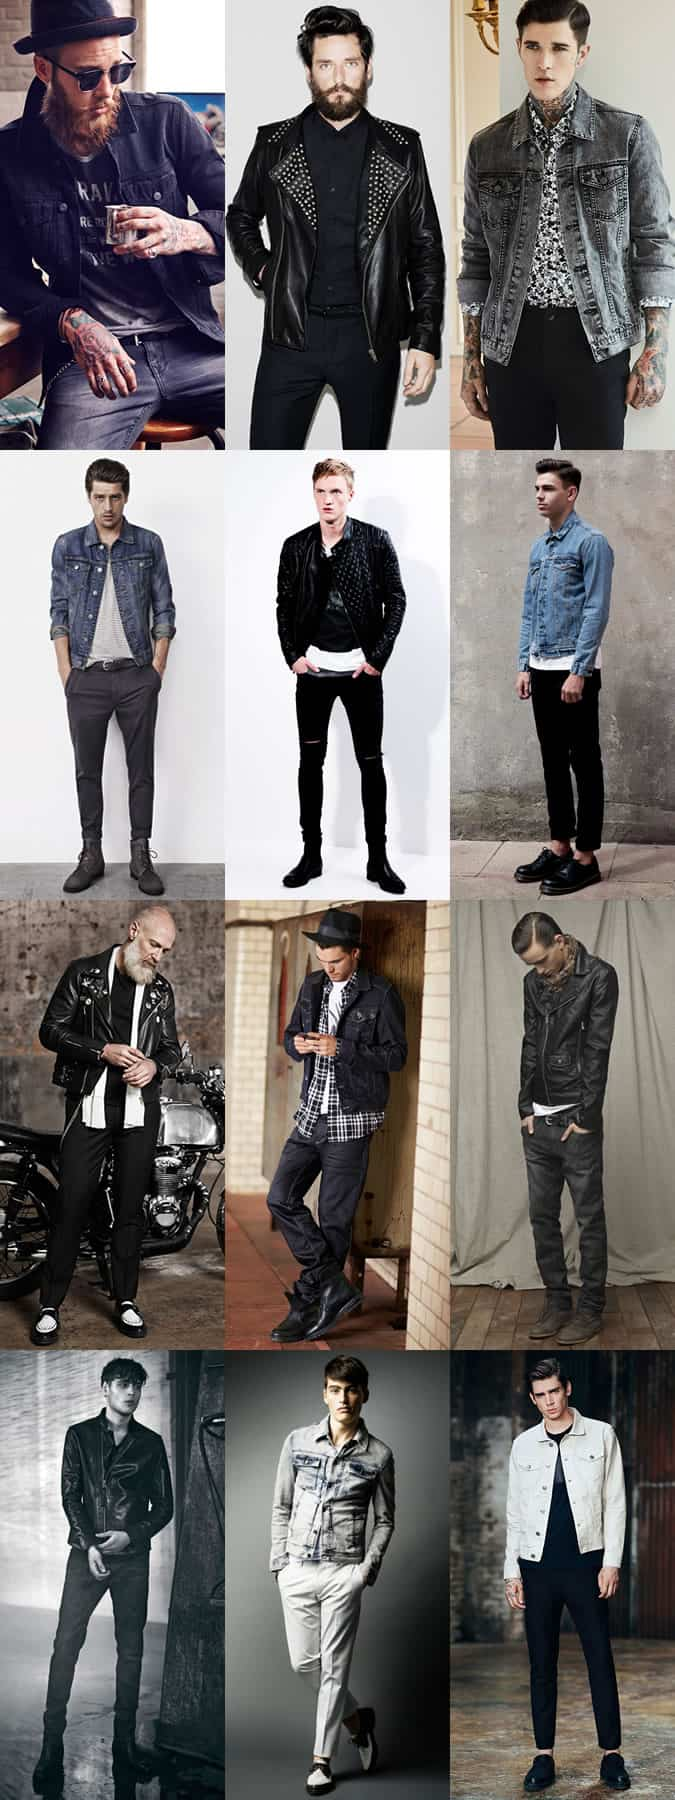 Men's Leather Biker Jackets & Denim Jackets - Modern Rockabilly-Inspired Outfit Inspiration Lookbook